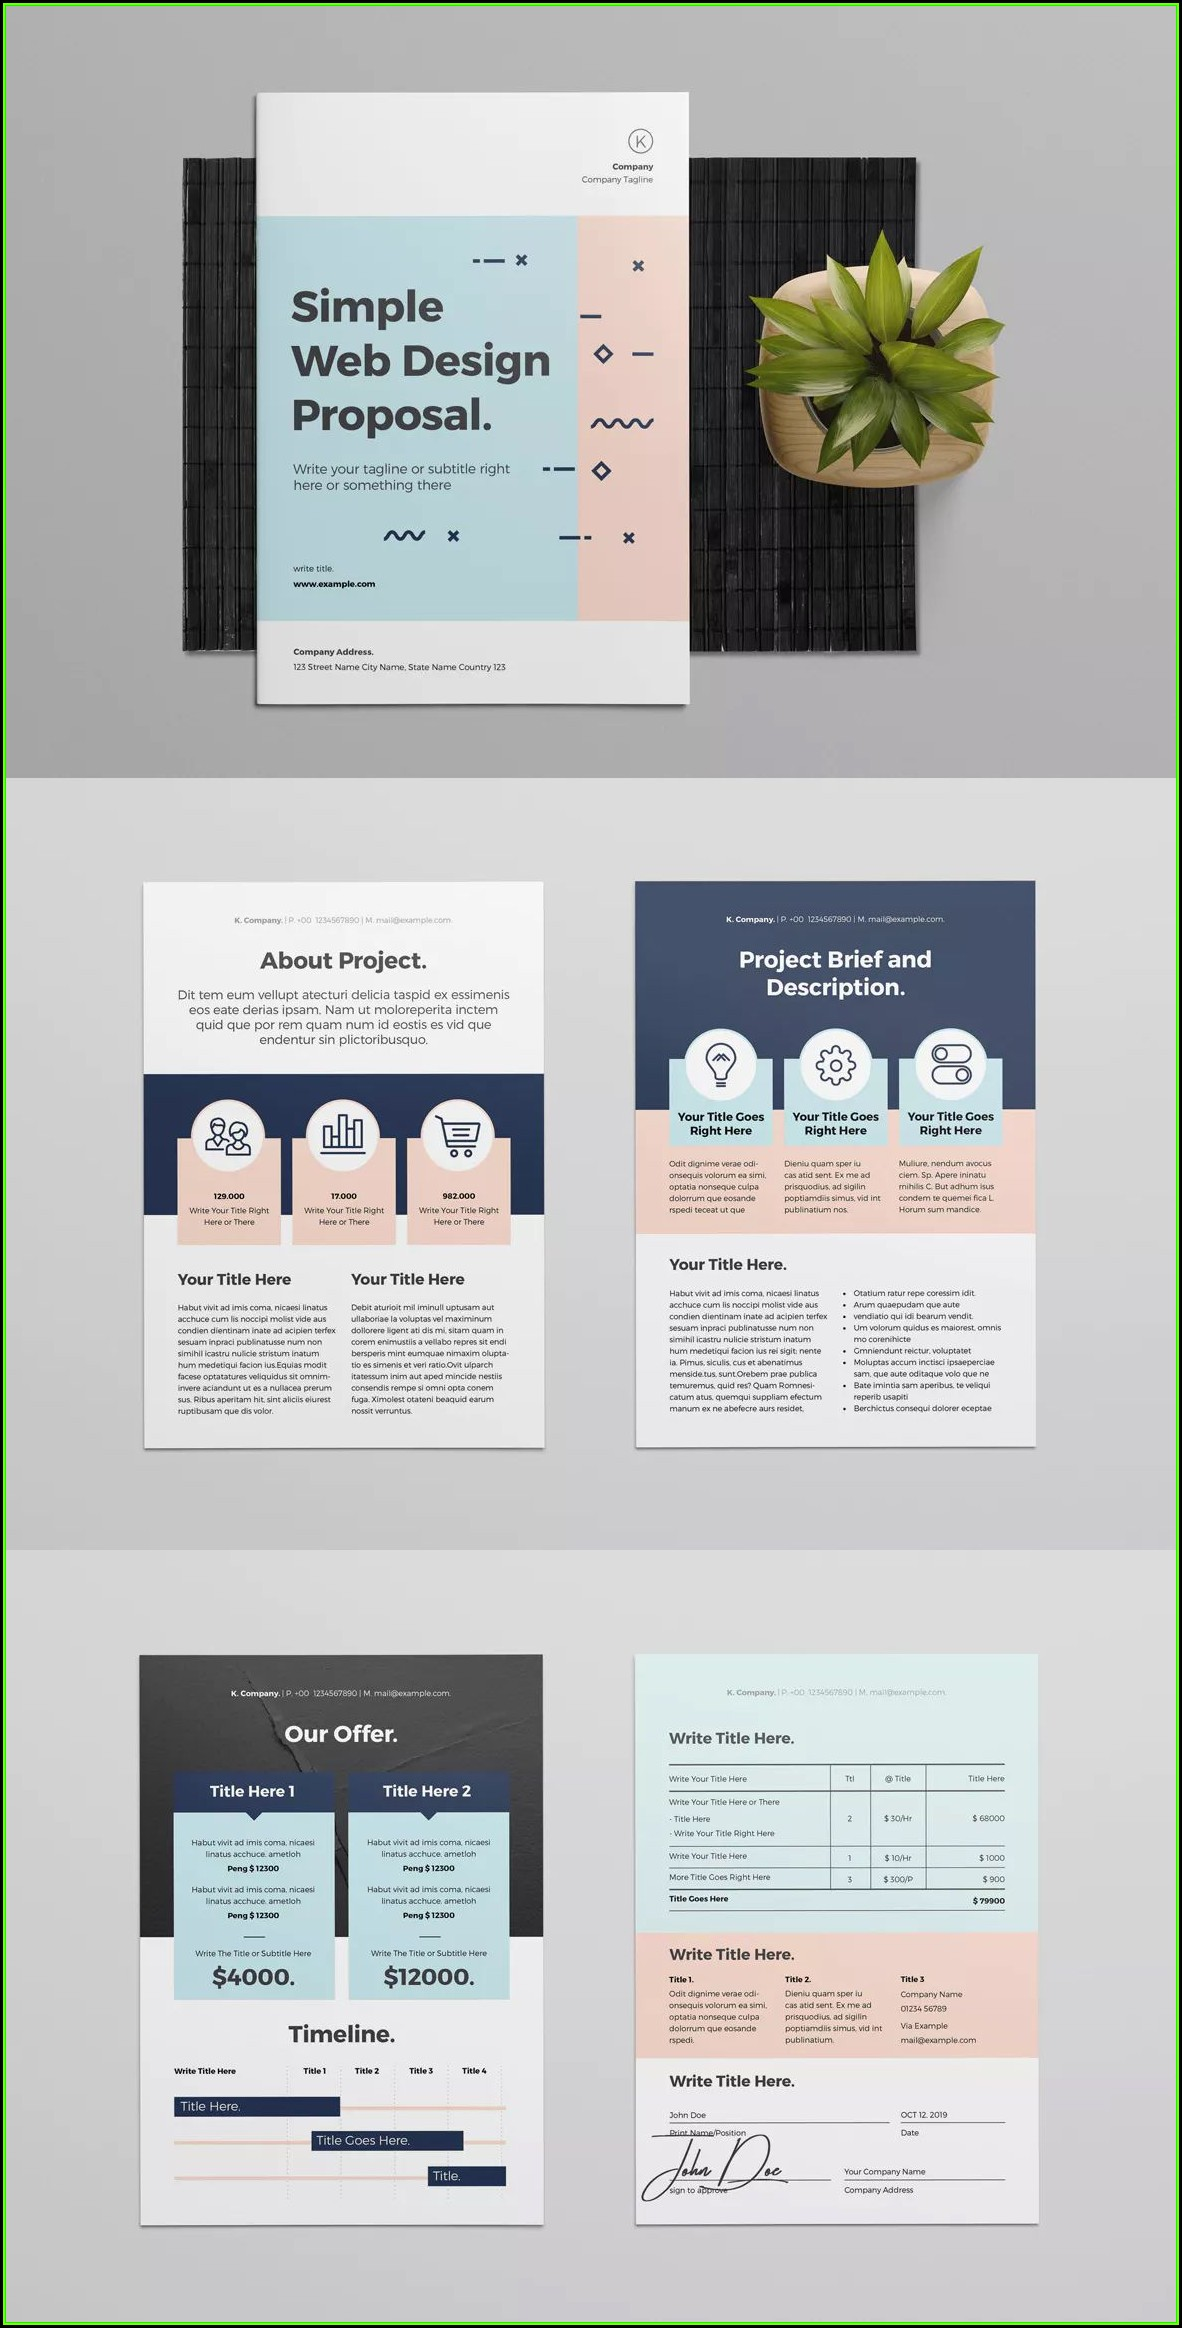 Web Design Proposal Template Indesign